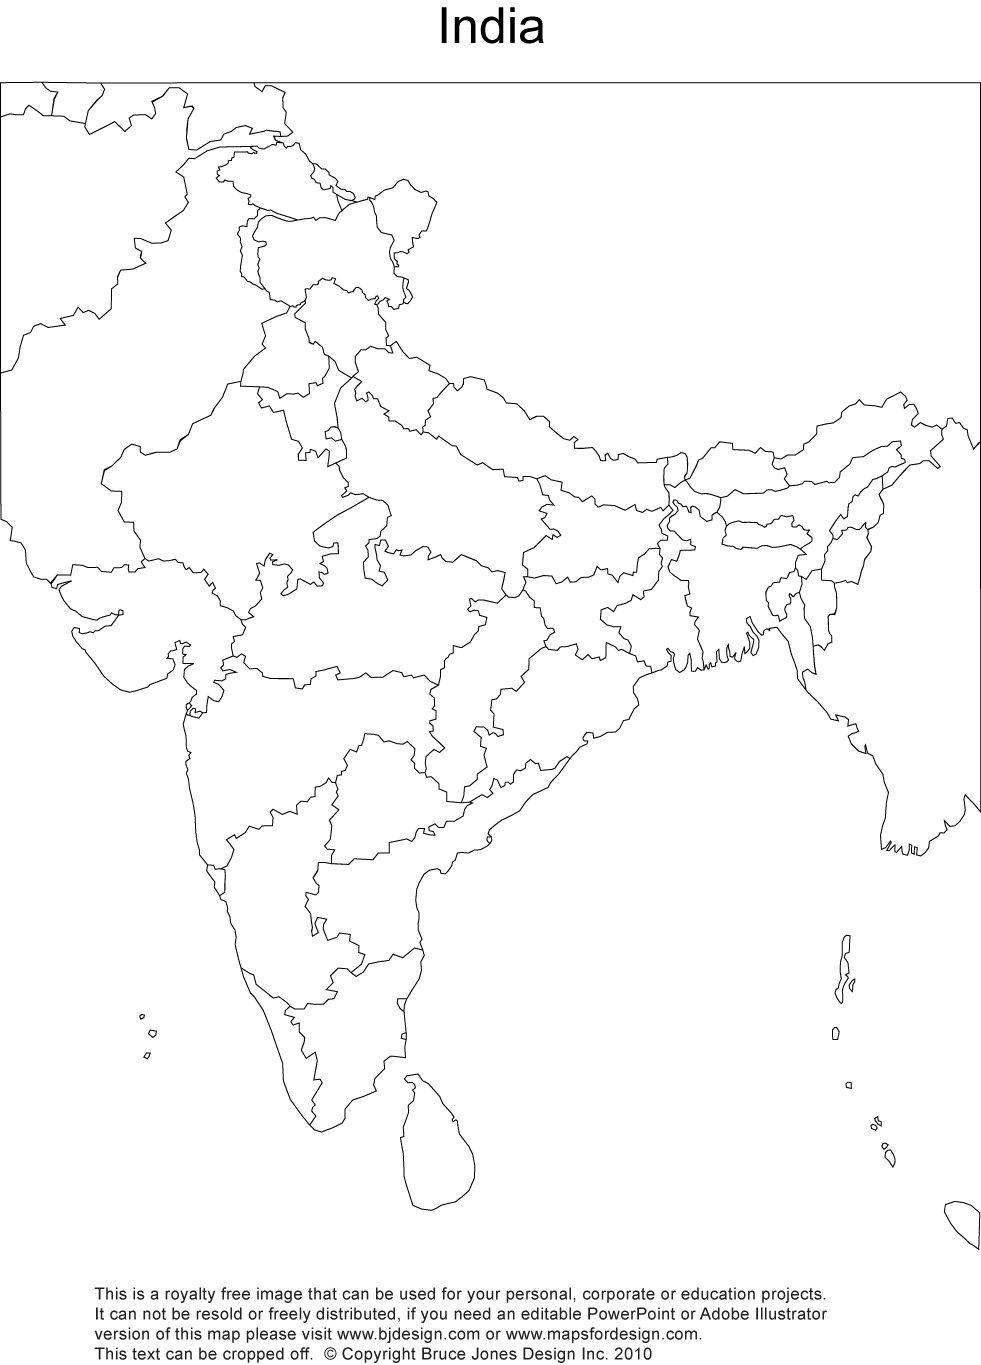 981x1365 India Printable, Blank Maps, Outline Maps Royalty Free